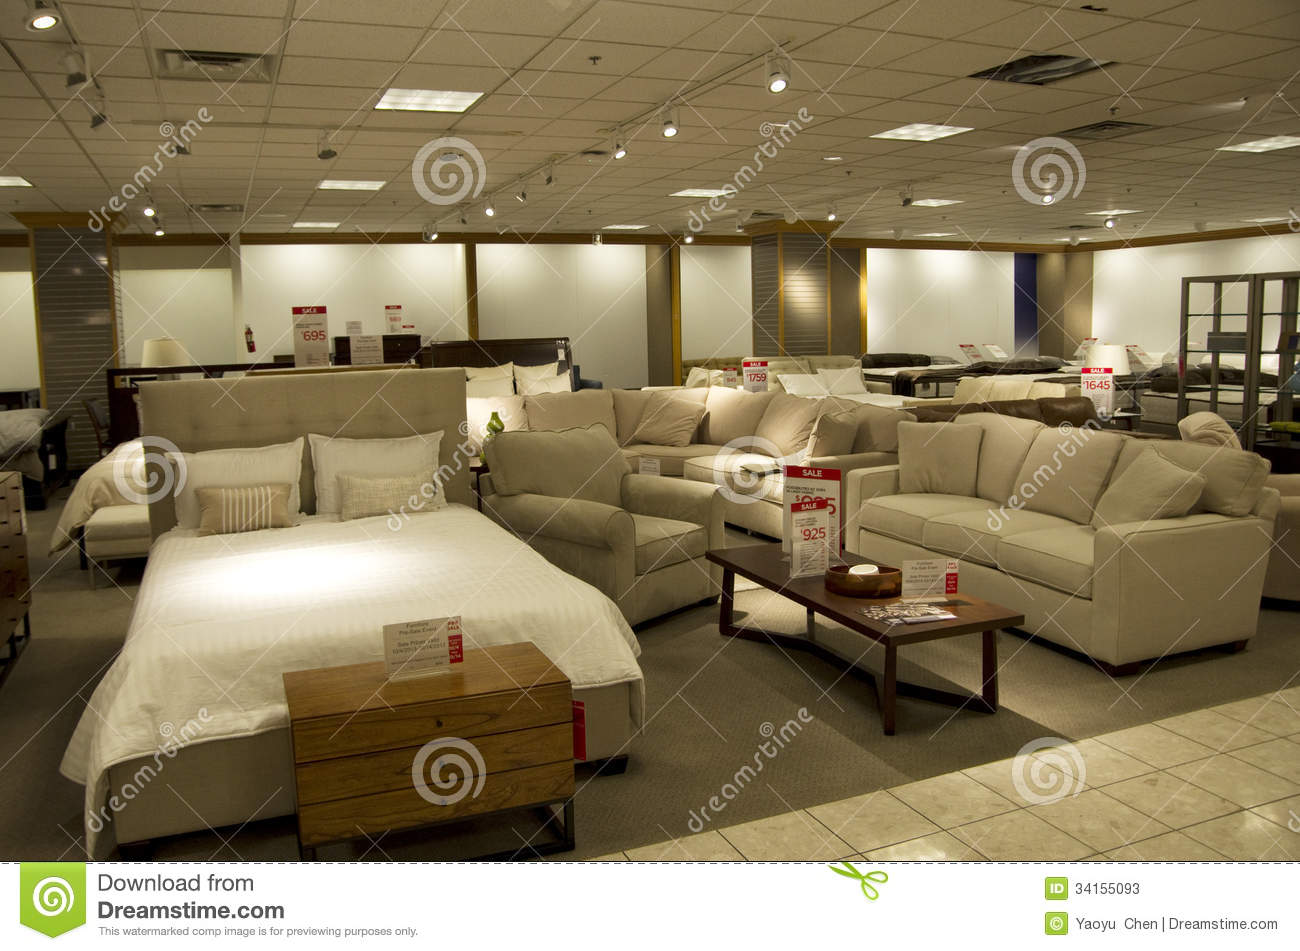 Home furniture department store stock photos image 34155093 Home furniture and mattress